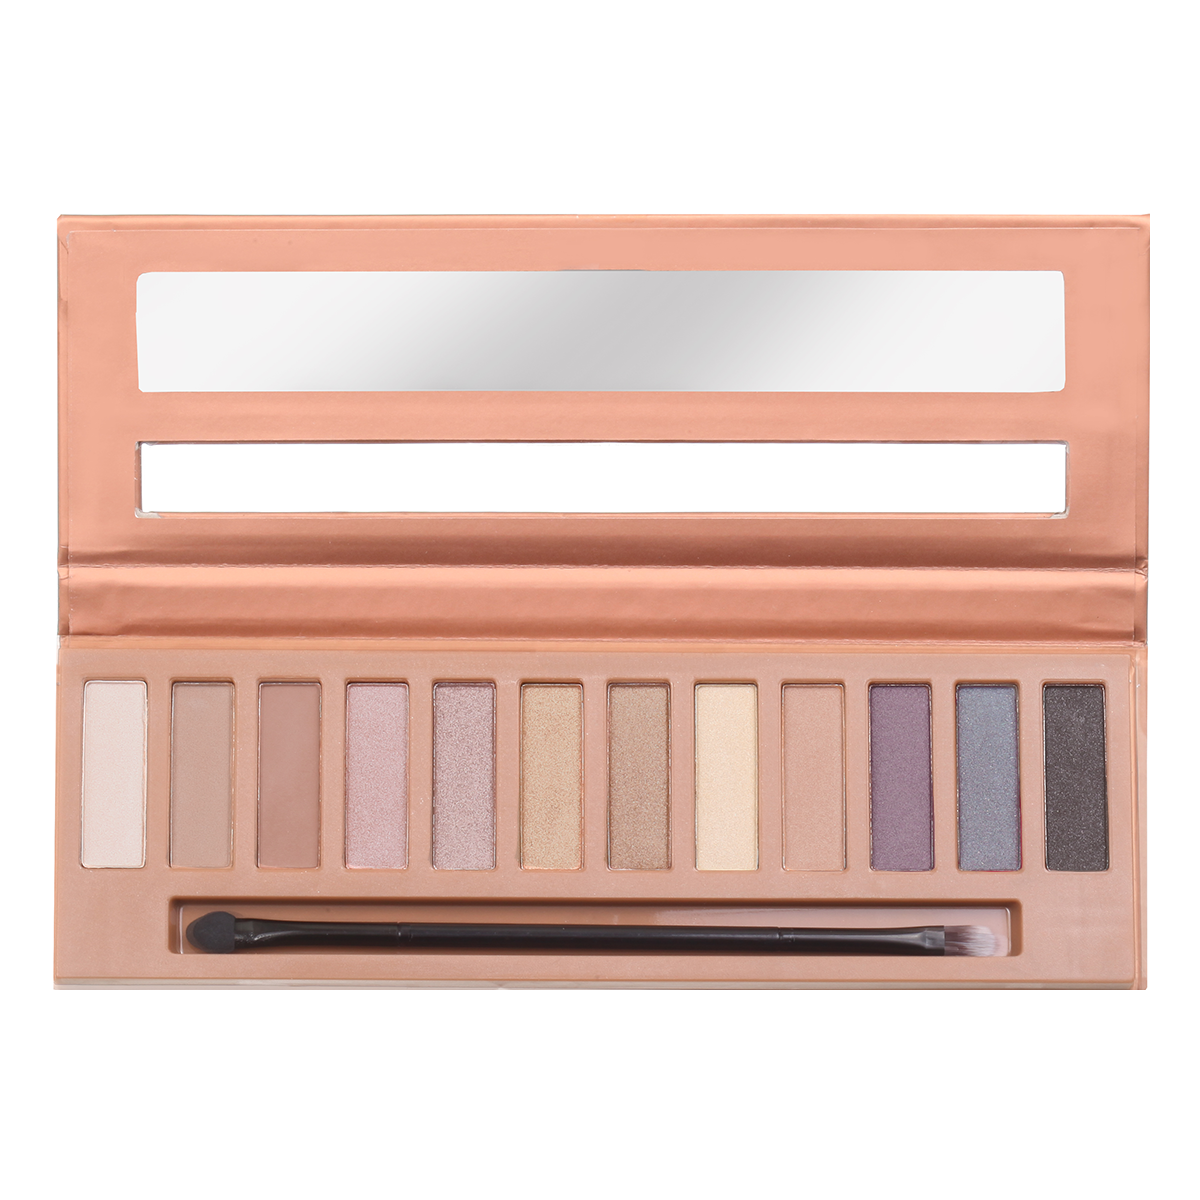 Silky Eyeshadow 12 Color Palette - Bare